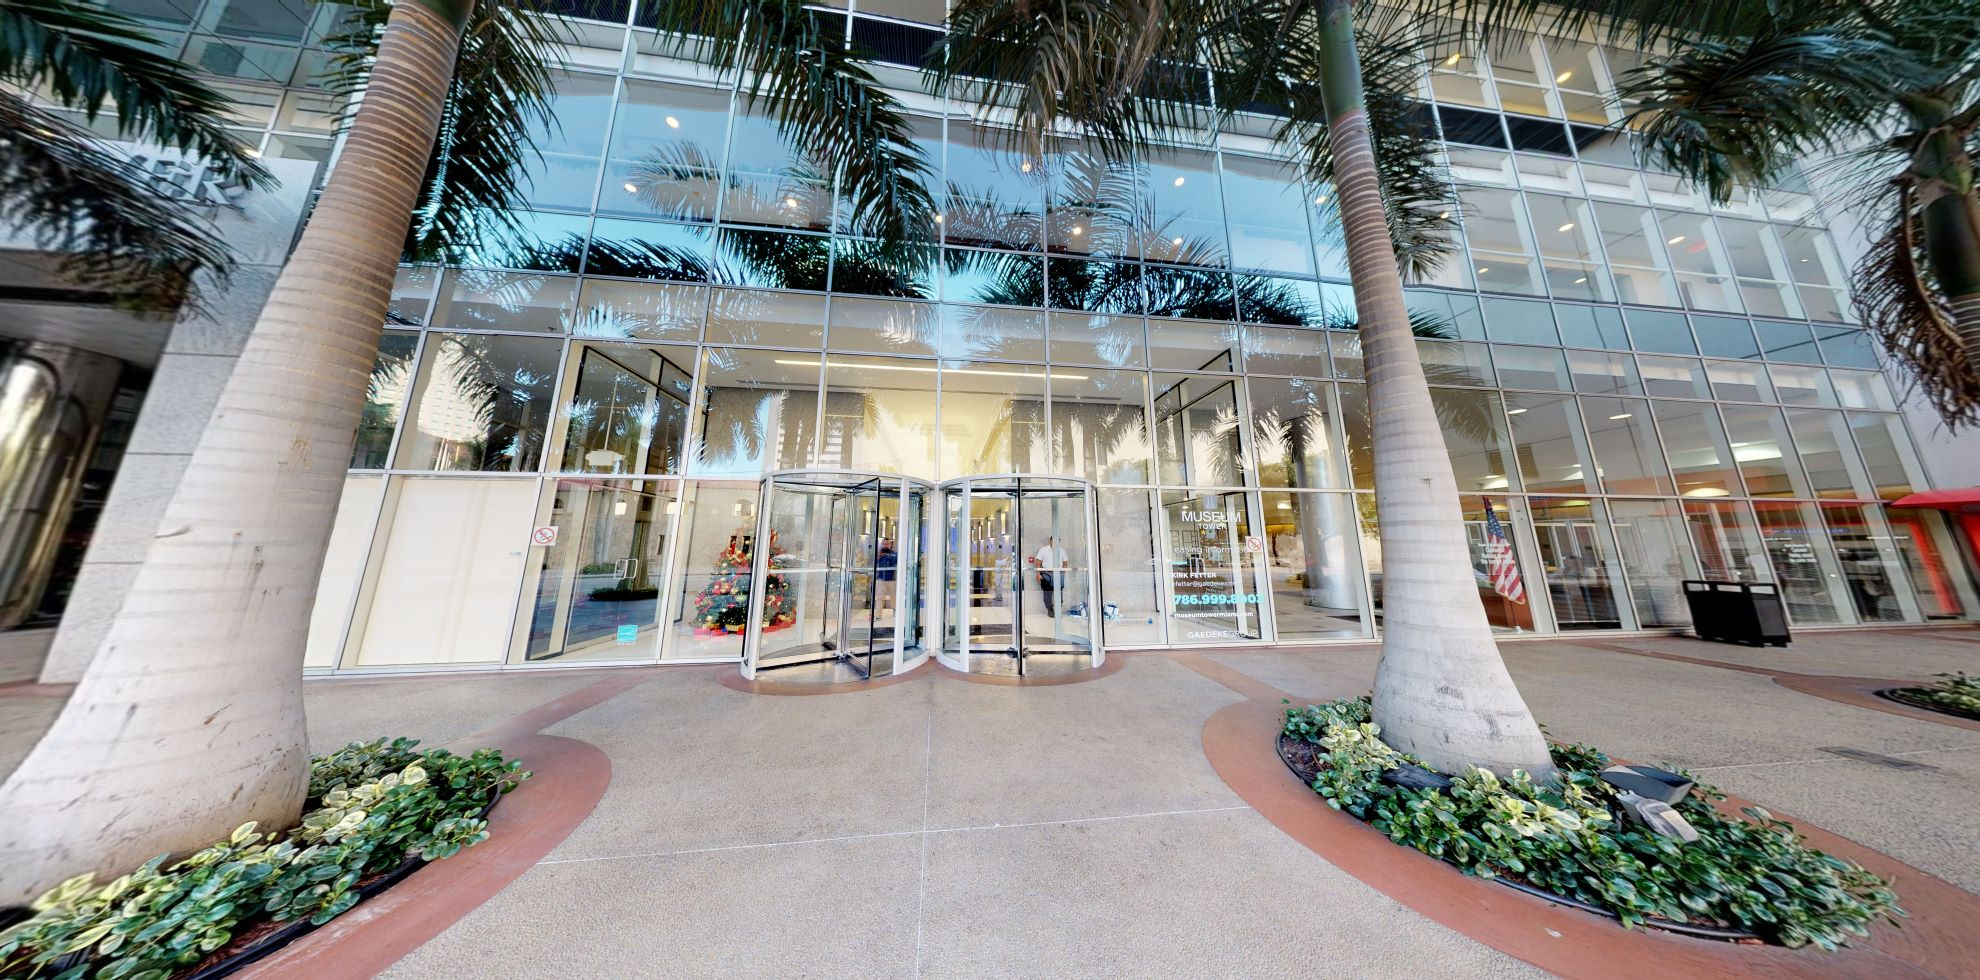 Bank of America financial center with walk-up ATM   150 W Flagler St, Miami, FL 33130